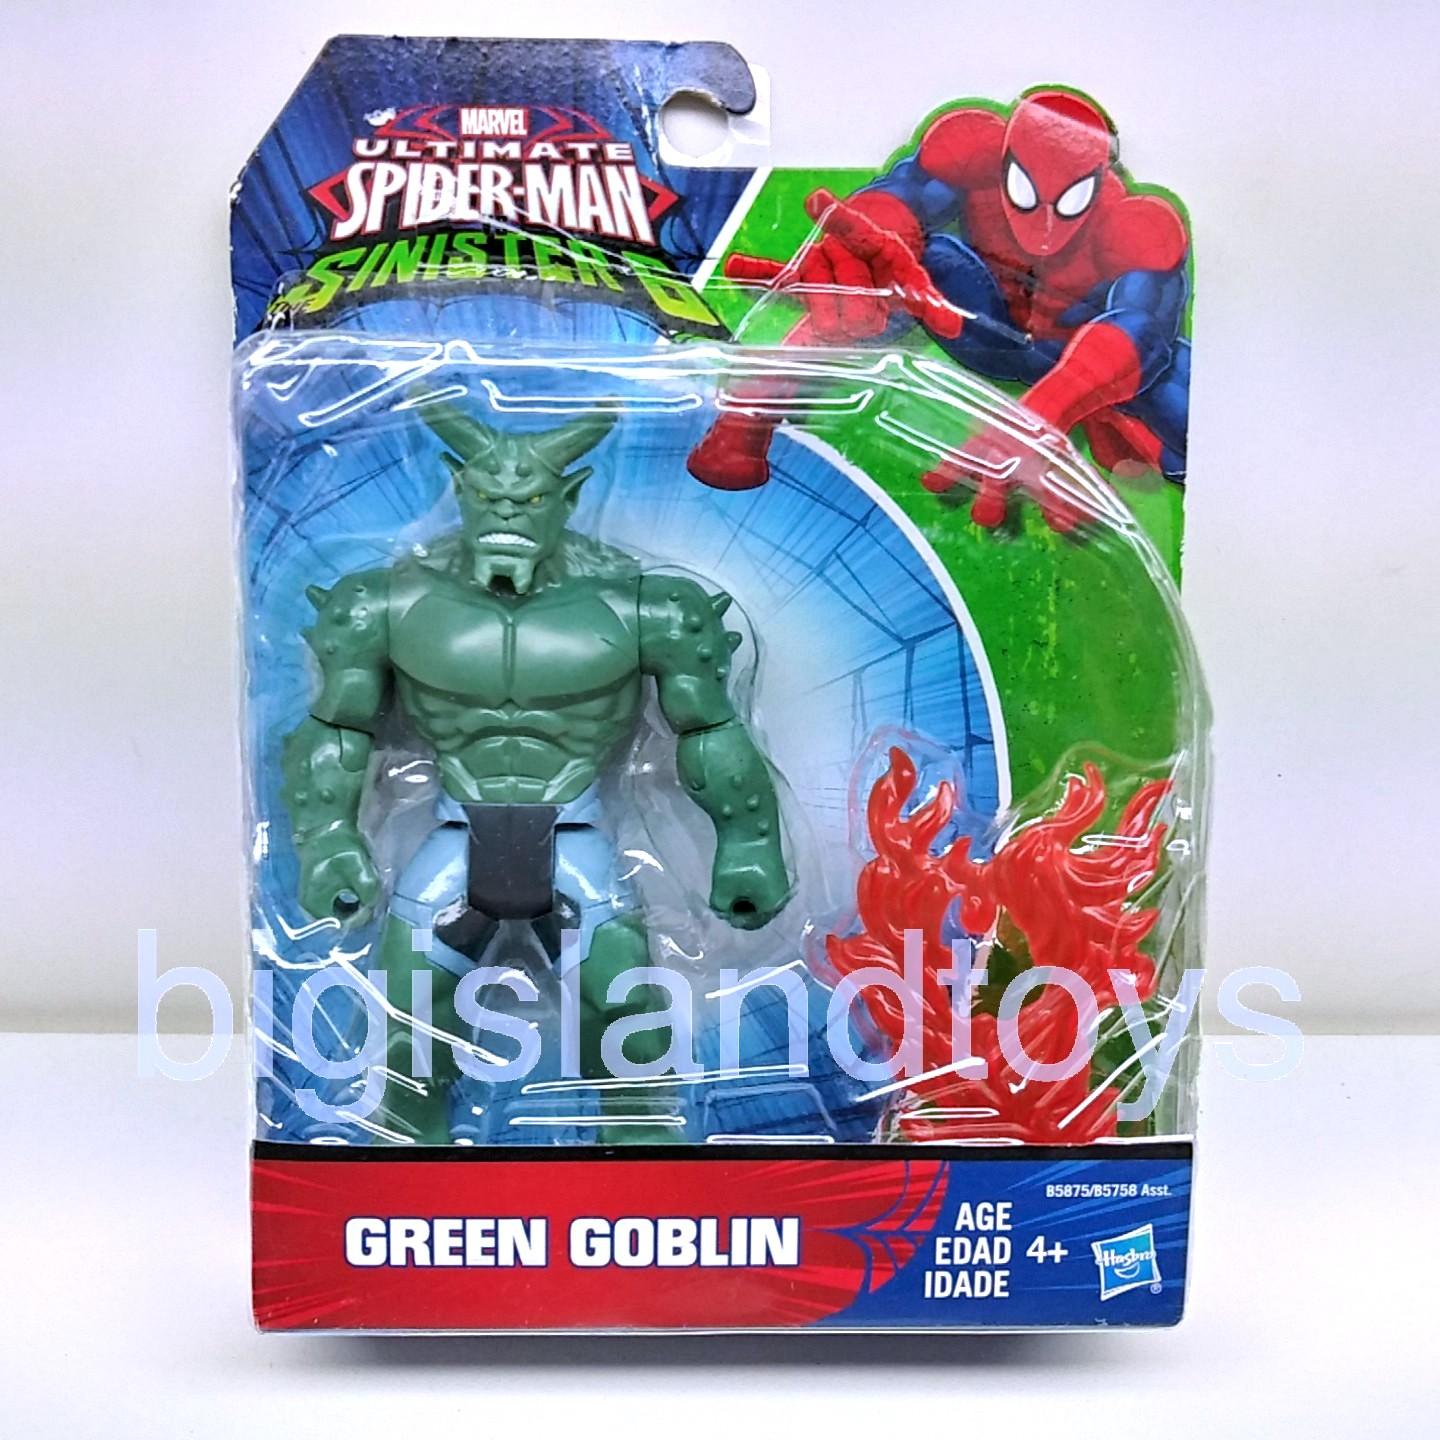 Spider-Man  Ultimate   Sinister Six Green Goblin